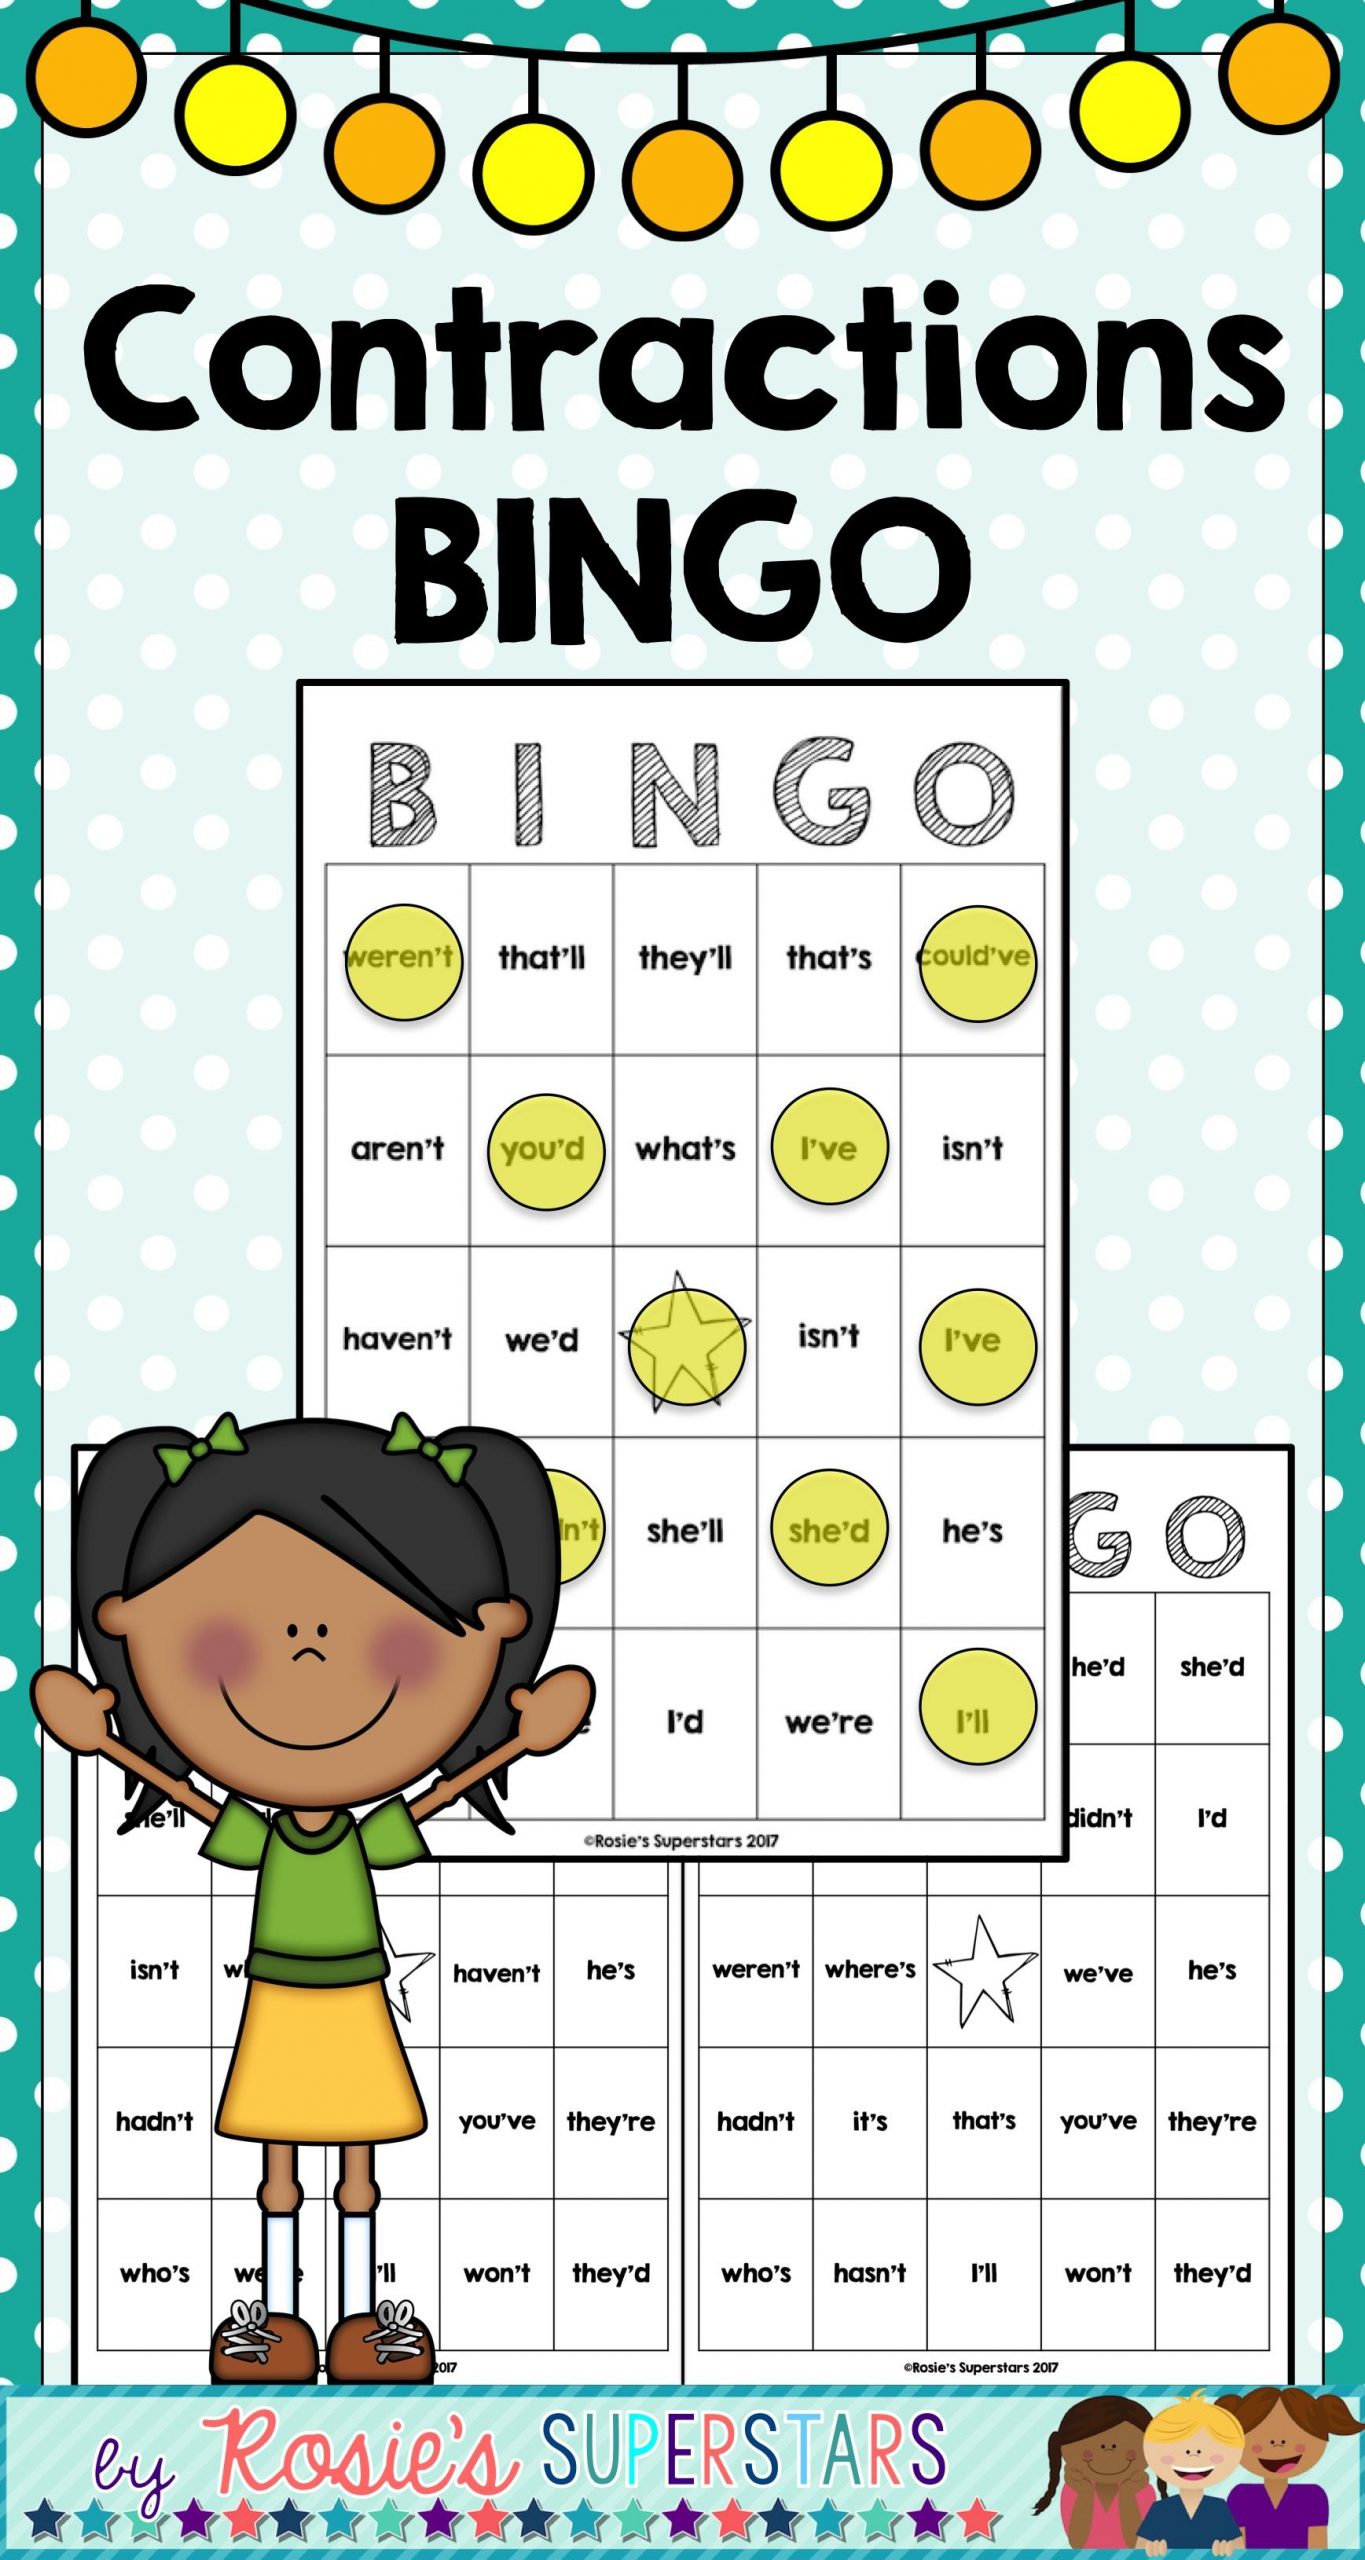 Contractions Bingo Game | Bingo Games, Blank Game Board